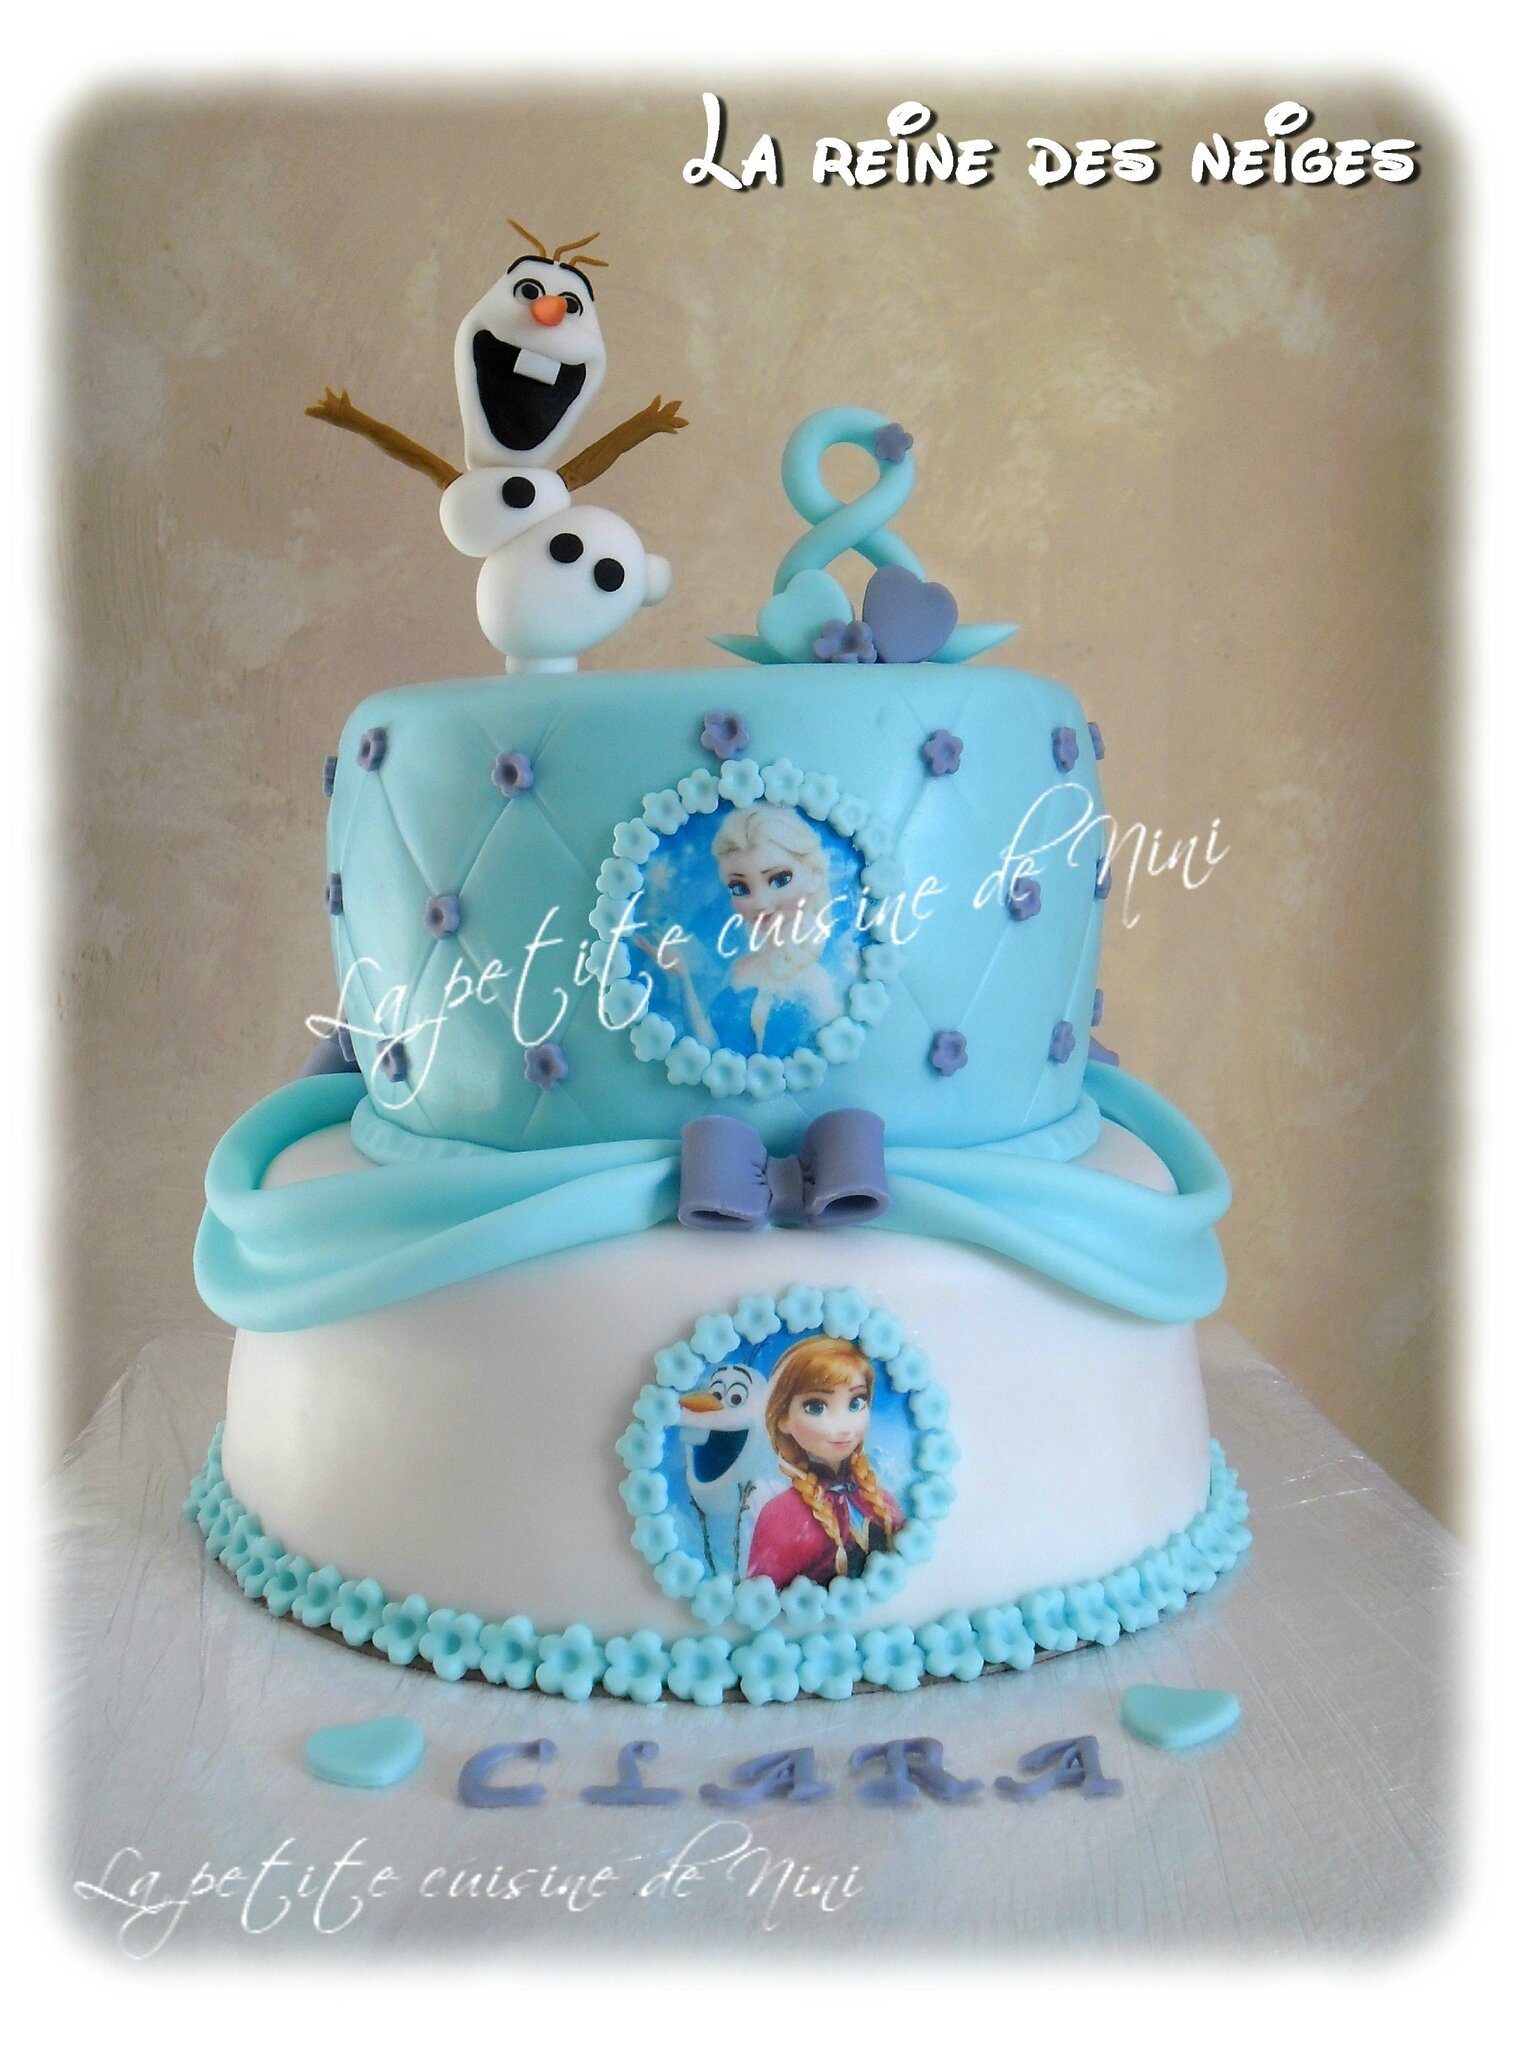 Photo sur gateau reine des neiges